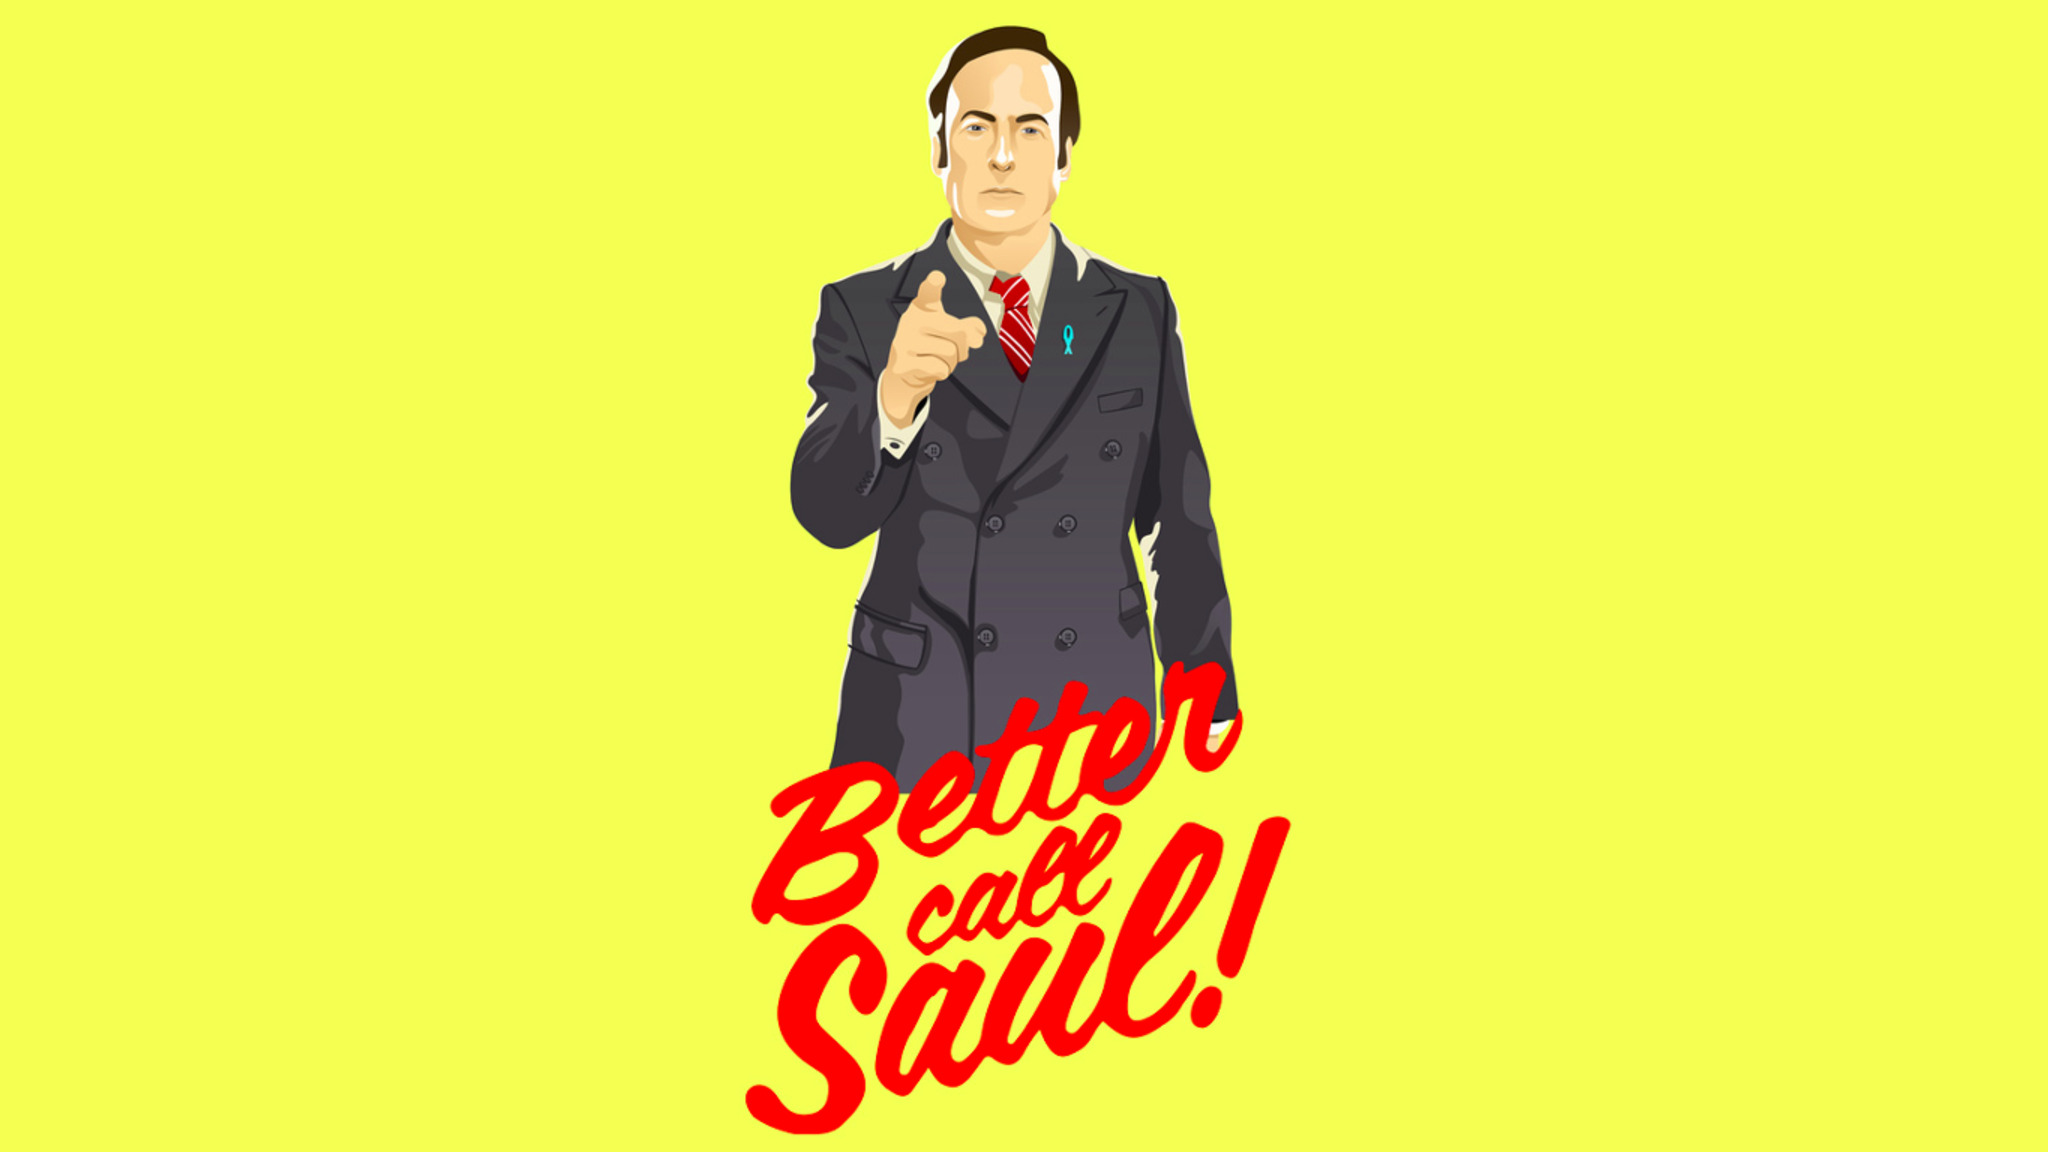 Cute Cartoon Hd Wallpapers For Android 2048x1152 Better Call Saul Tv Series 2048x1152 Resolution